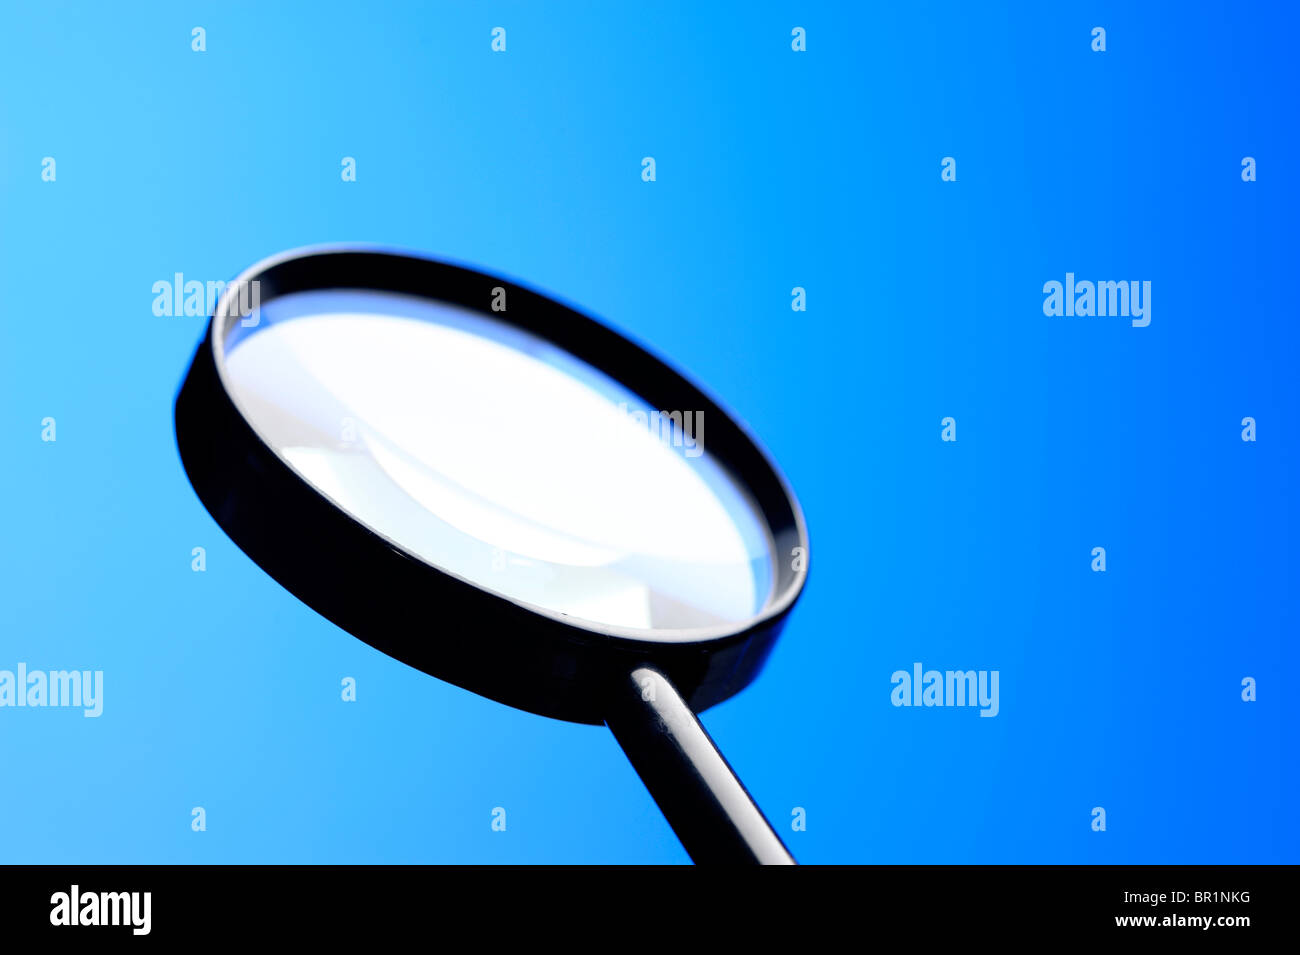 Magnifying glass lens - Stock Image